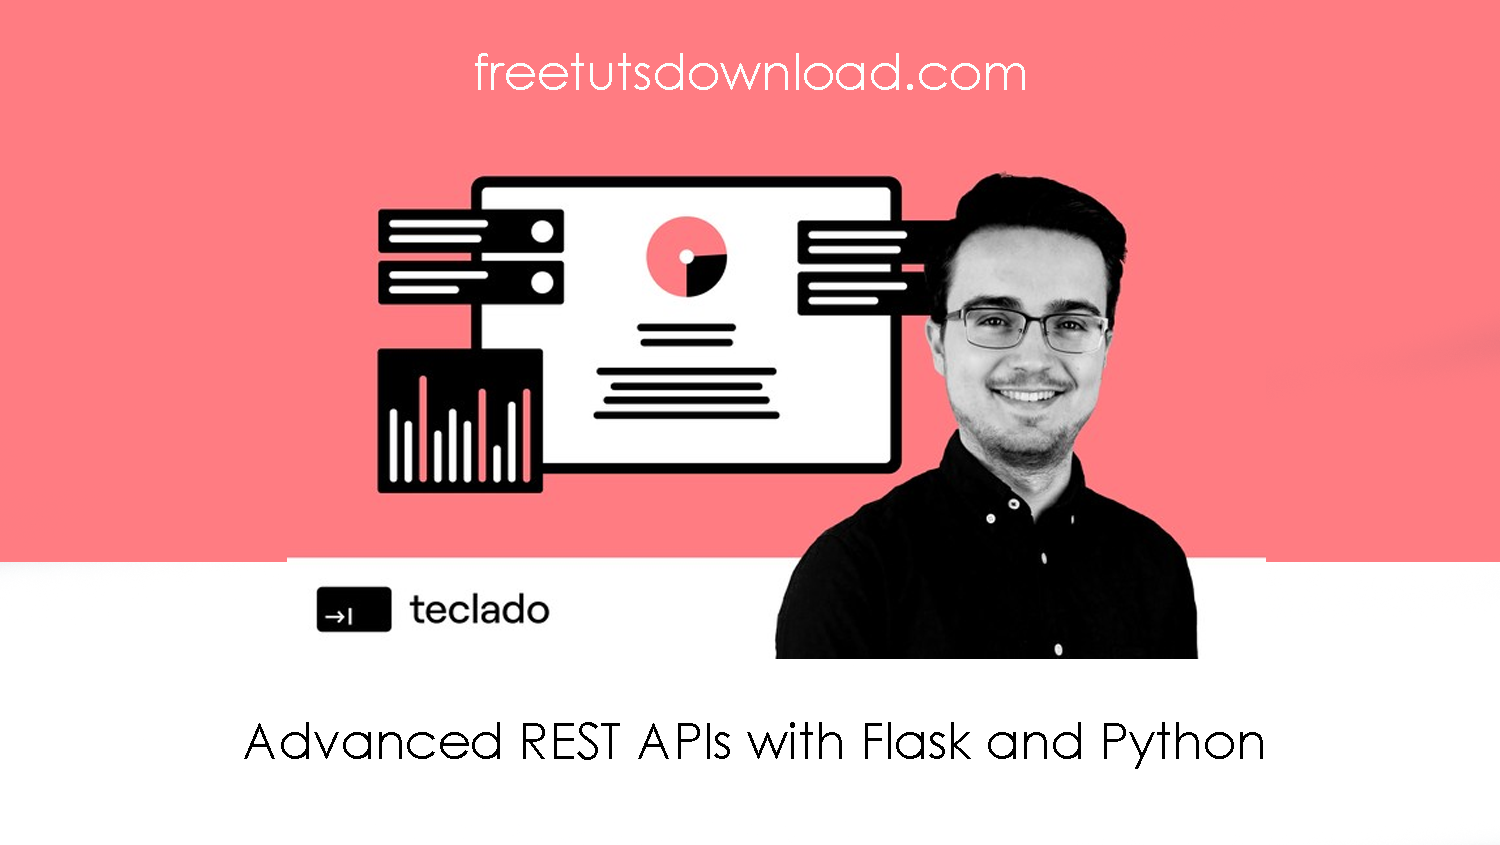 Advanced REST APIs with Flask and Python Free Download